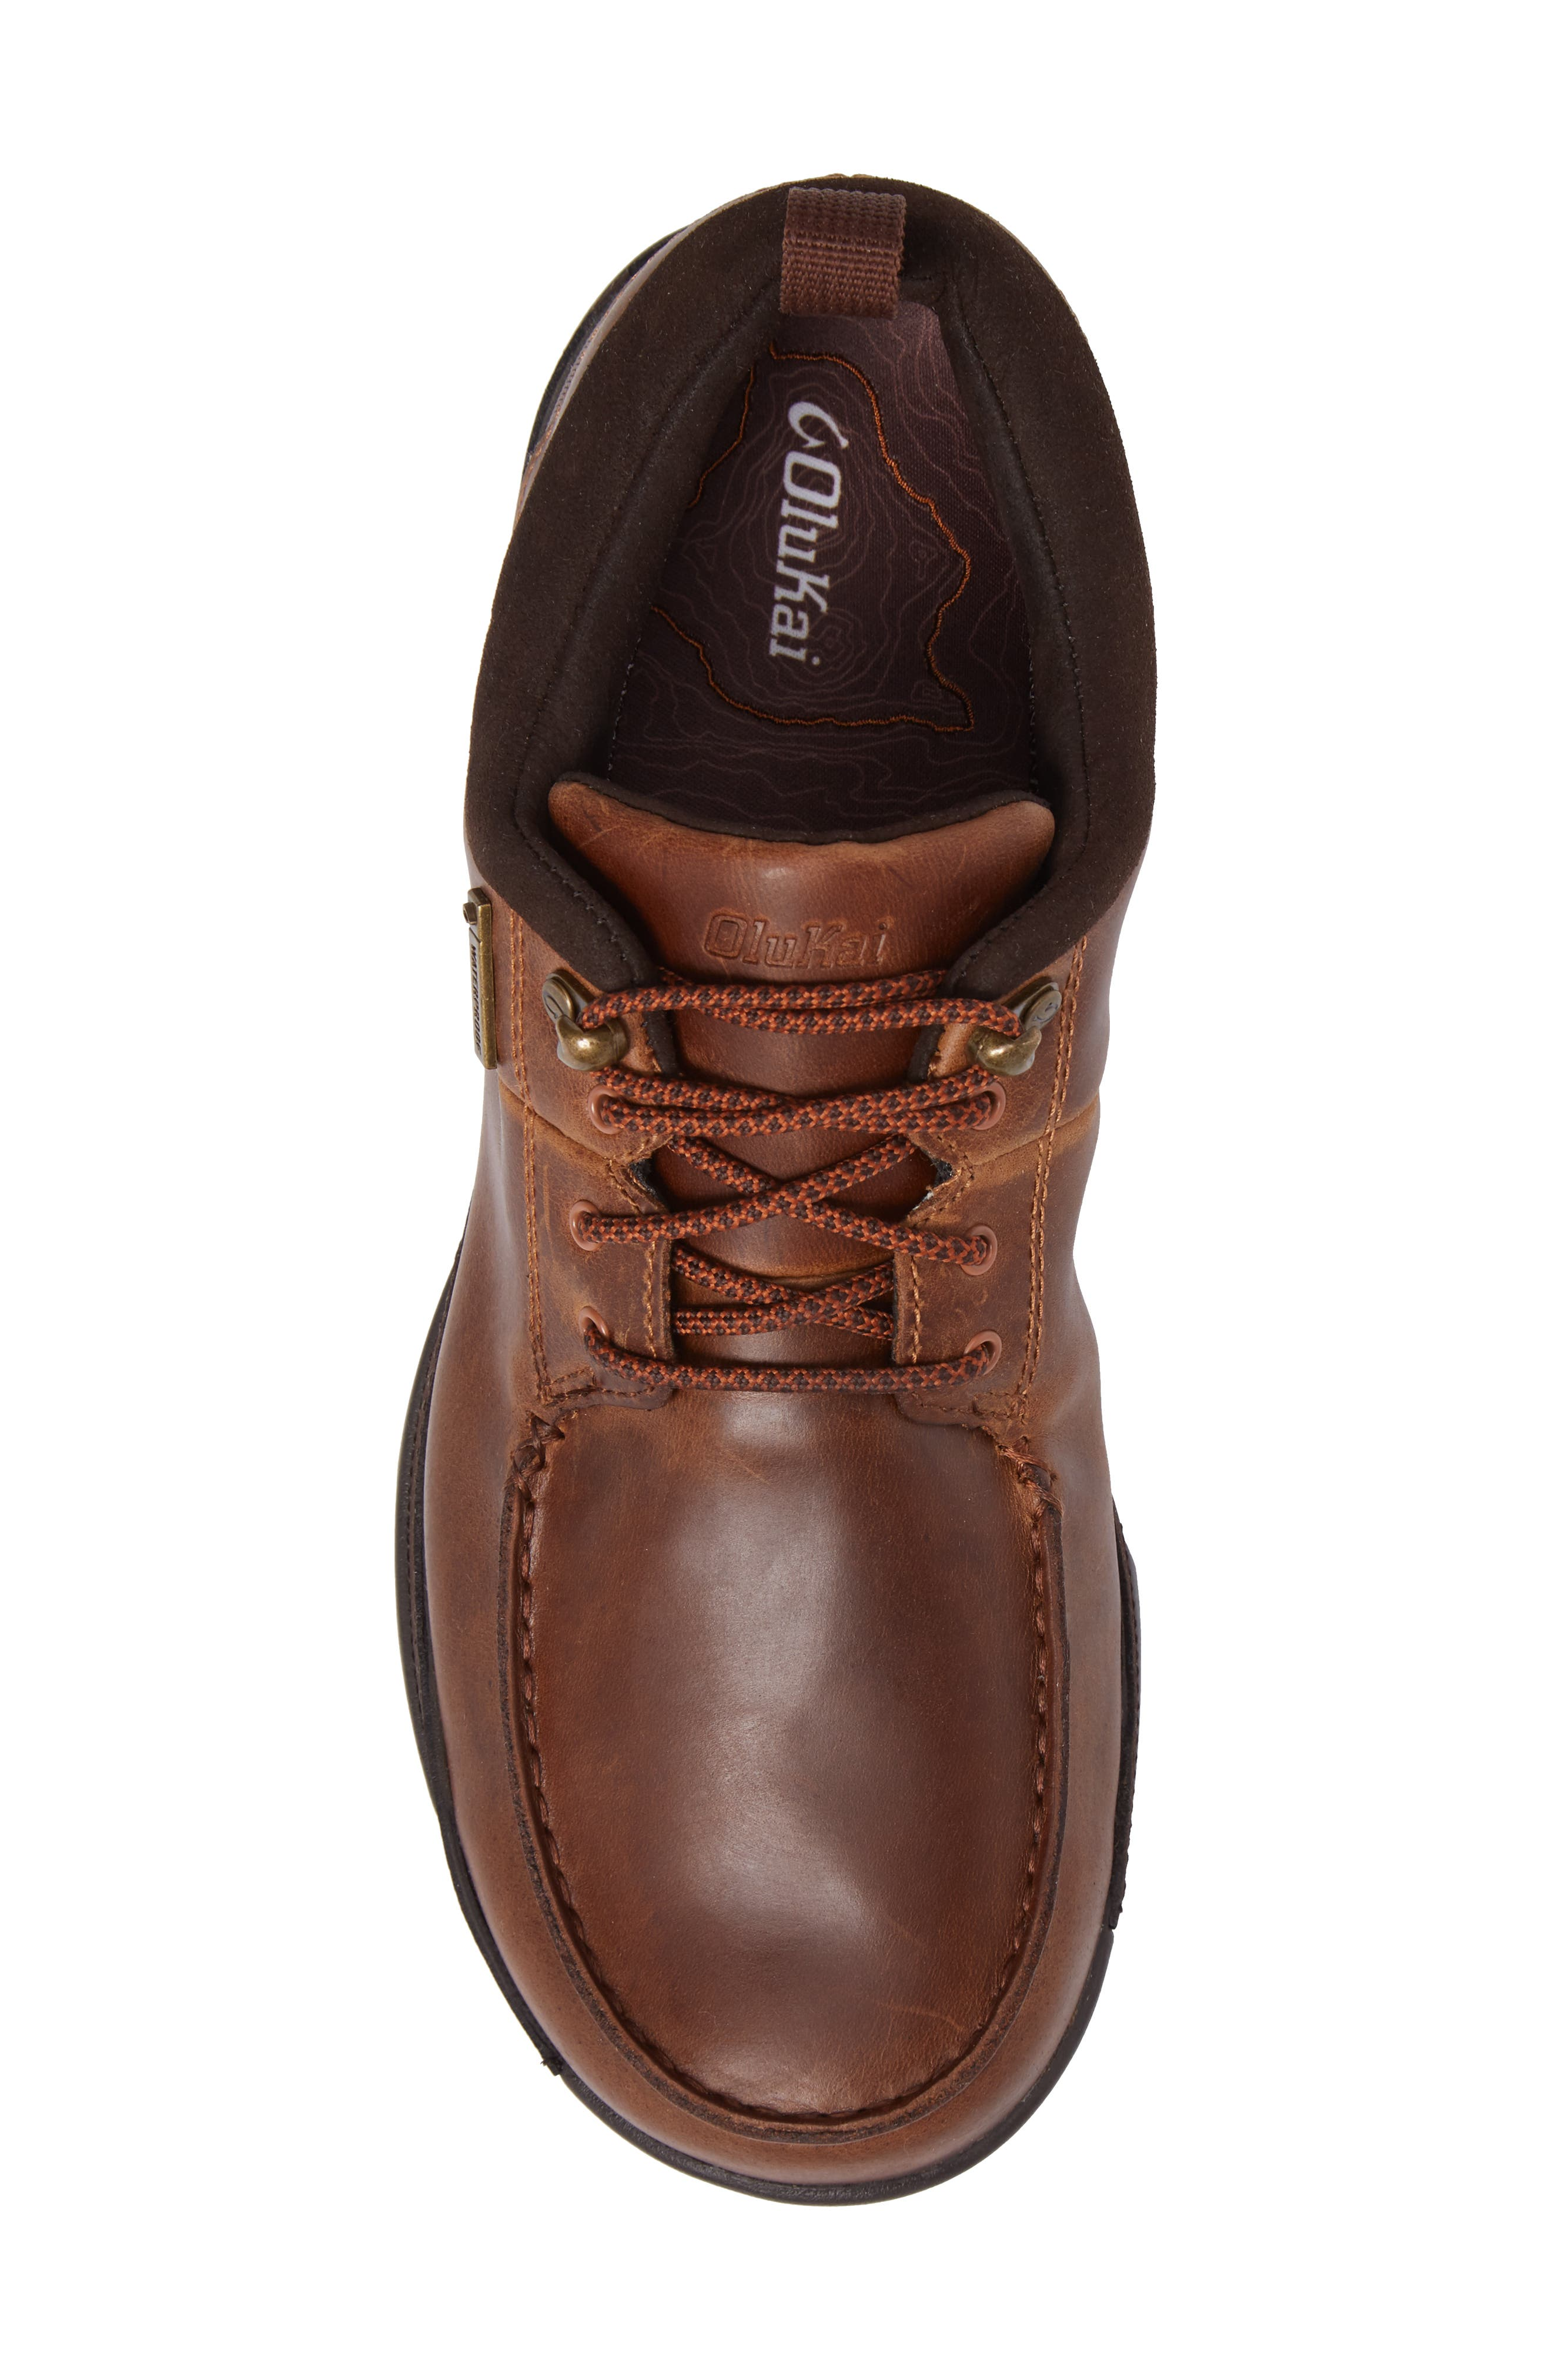 Makoa Waterproof Shoe,                             Alternate thumbnail 5, color,                             Fox/ Dark Wood Leather